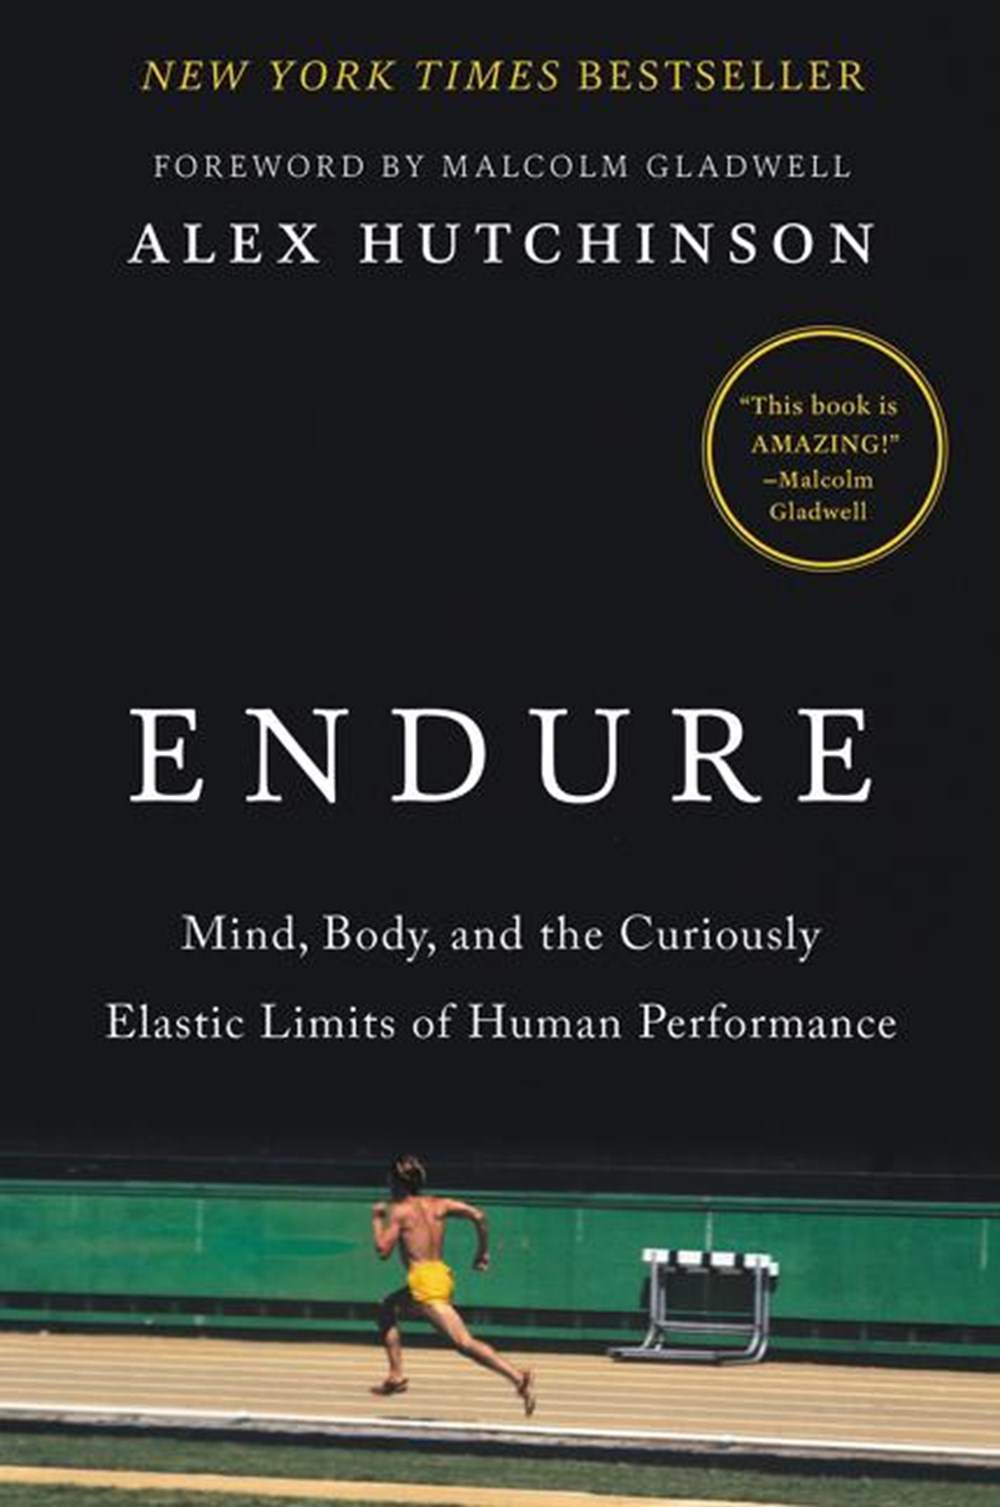 Endure Mind, Body, and the Curiously Elastic Limits of Human Performance